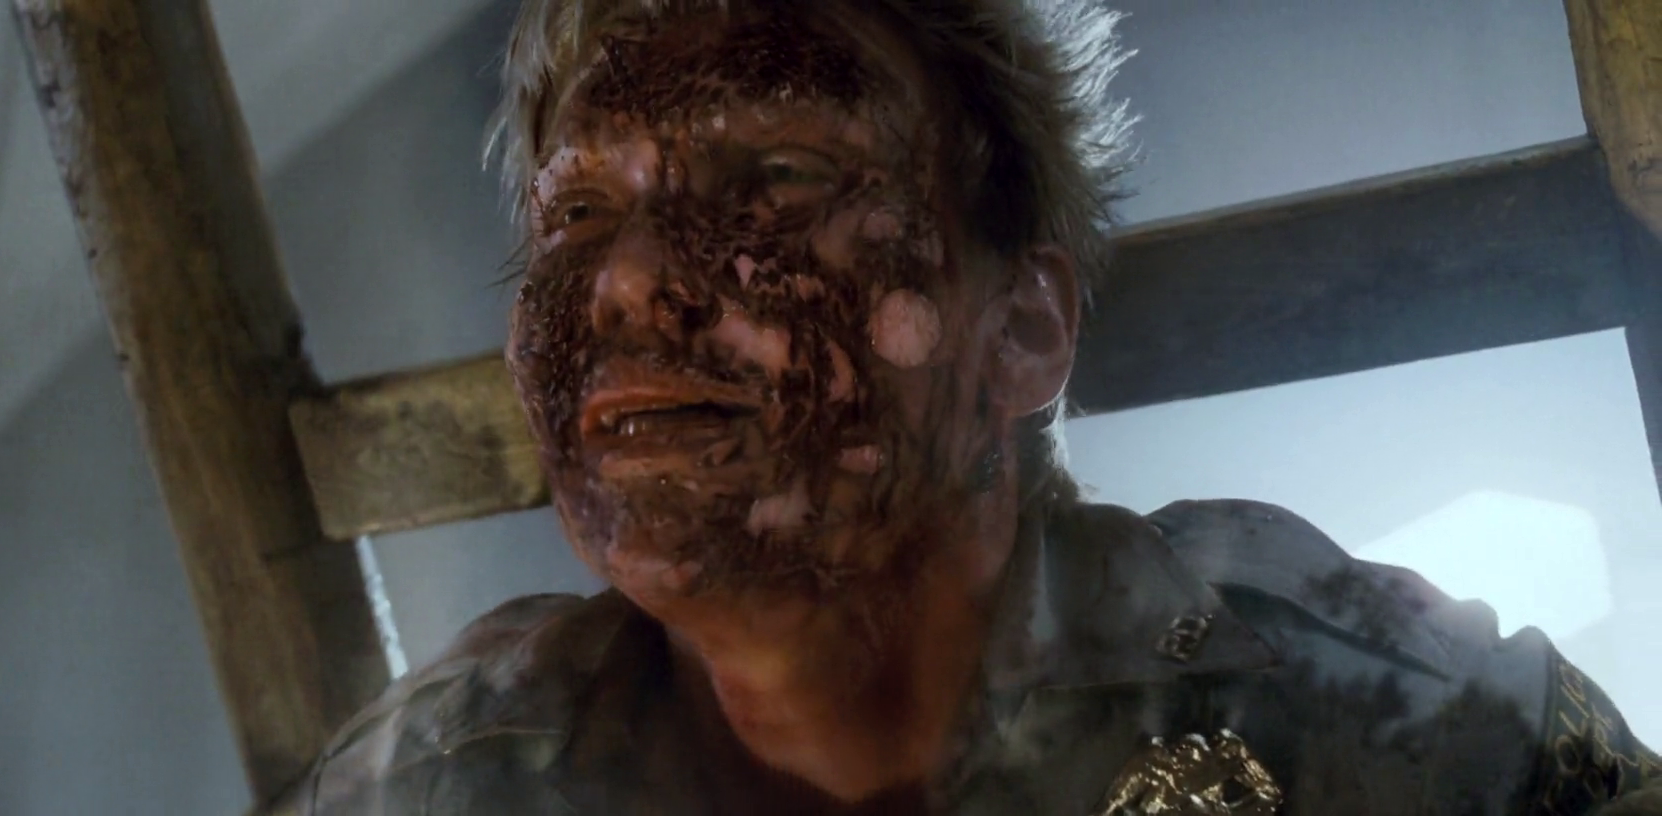 10 horror deaths that just look painful bloodbath and